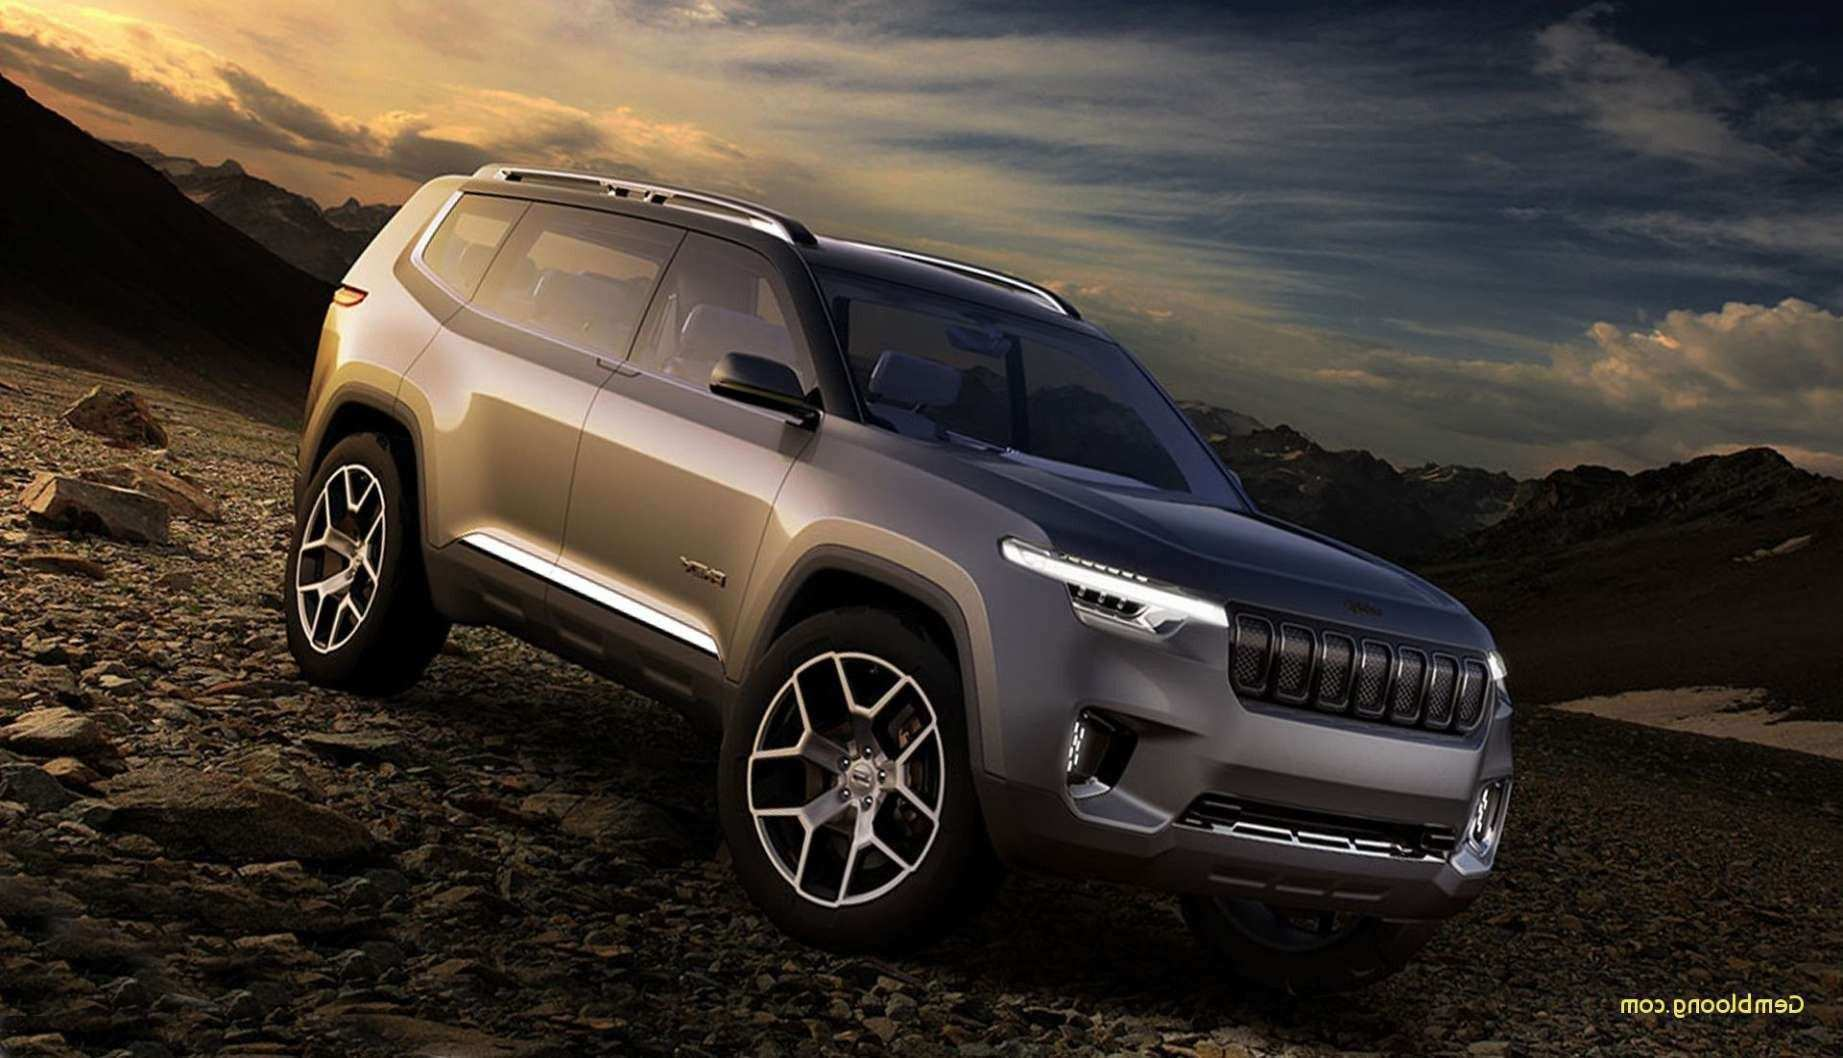 81 Concept of Jeep Grand Cherokee 2020 Pricing for Jeep Grand Cherokee 2020